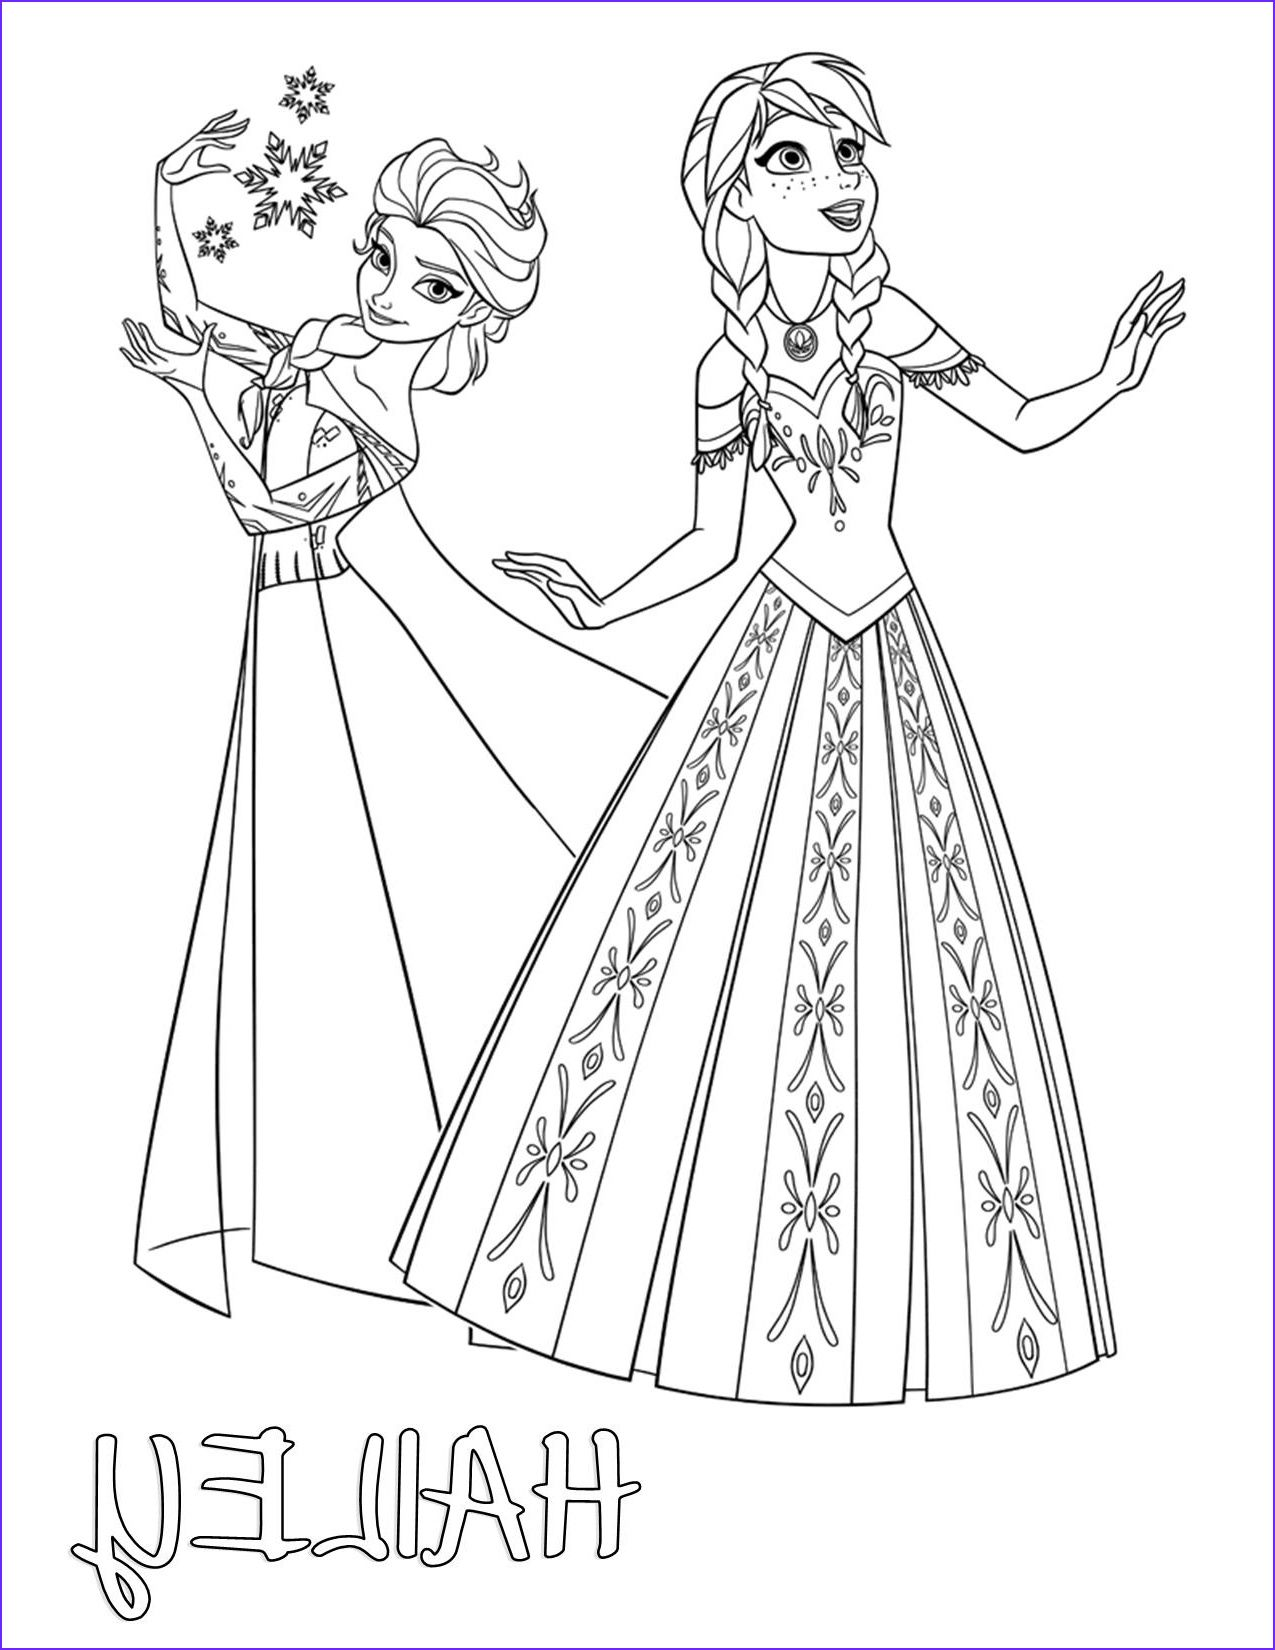 Frozen Elsa And Anna Color Your Own T Shirt Elsa Coloring Pages Disney Coloring Pages Cool Coloring Pages